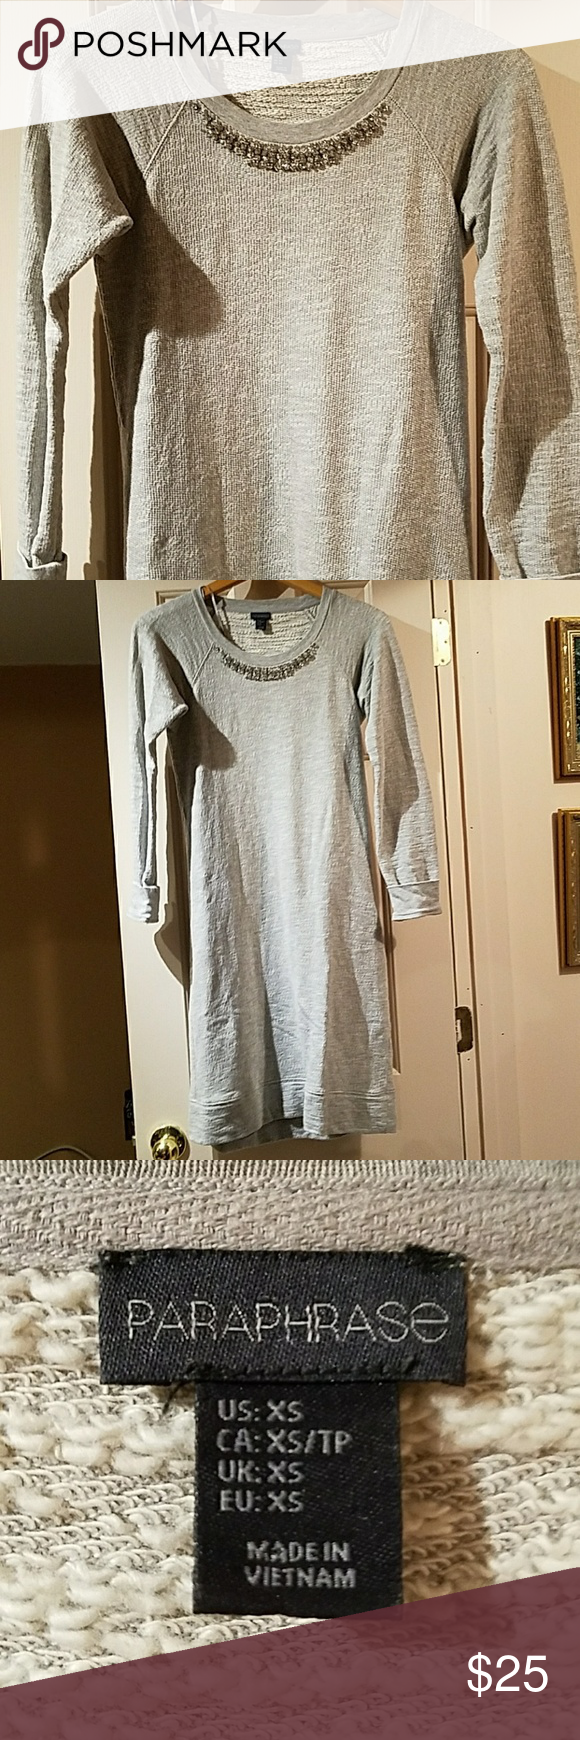 Paraphrase Extra Small Gray Jeweled Sweater Dres Long Sleeve Dre Clothe Design Dress Grey